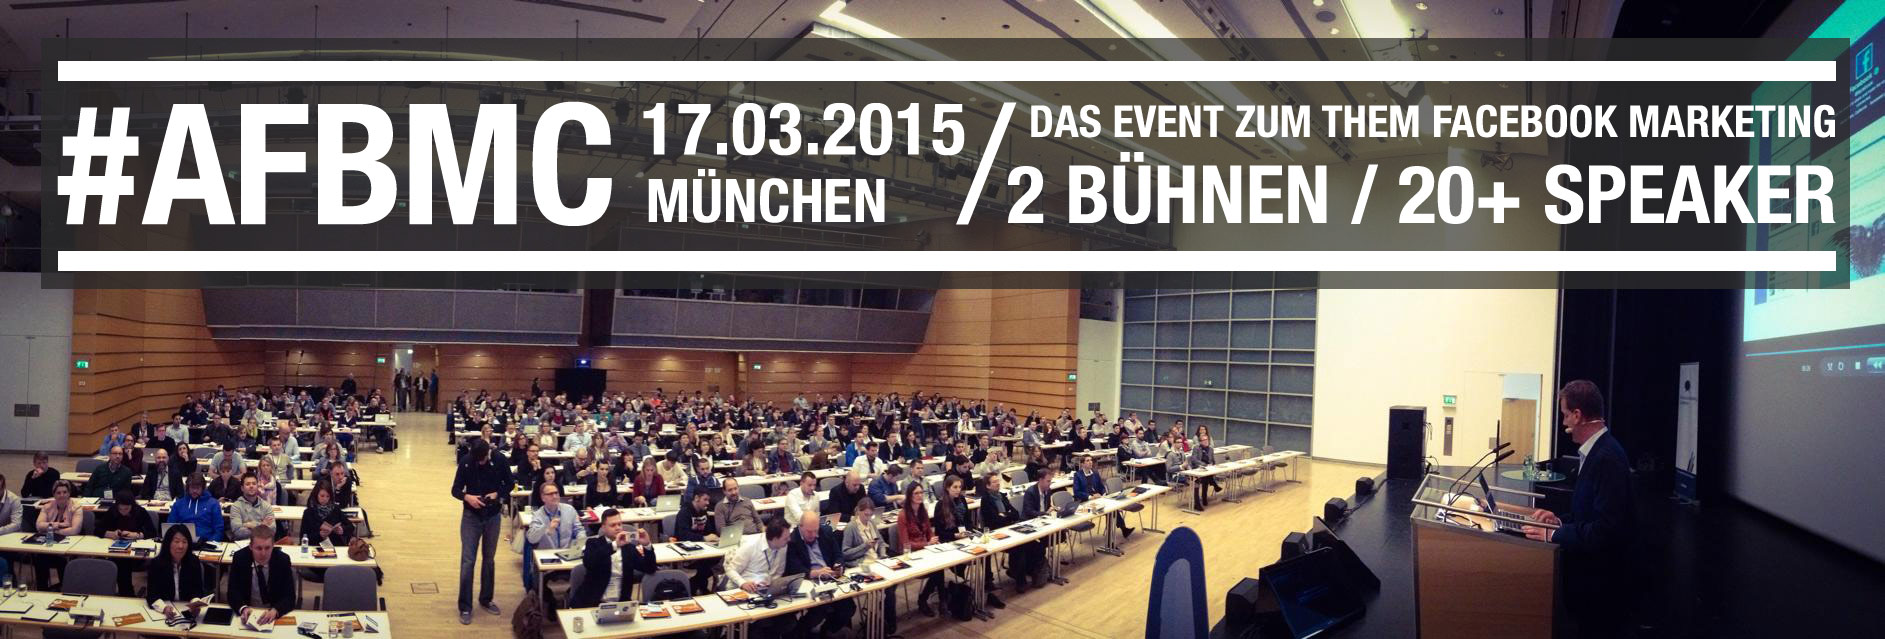 AllFacebook Marketing Conference München 2015